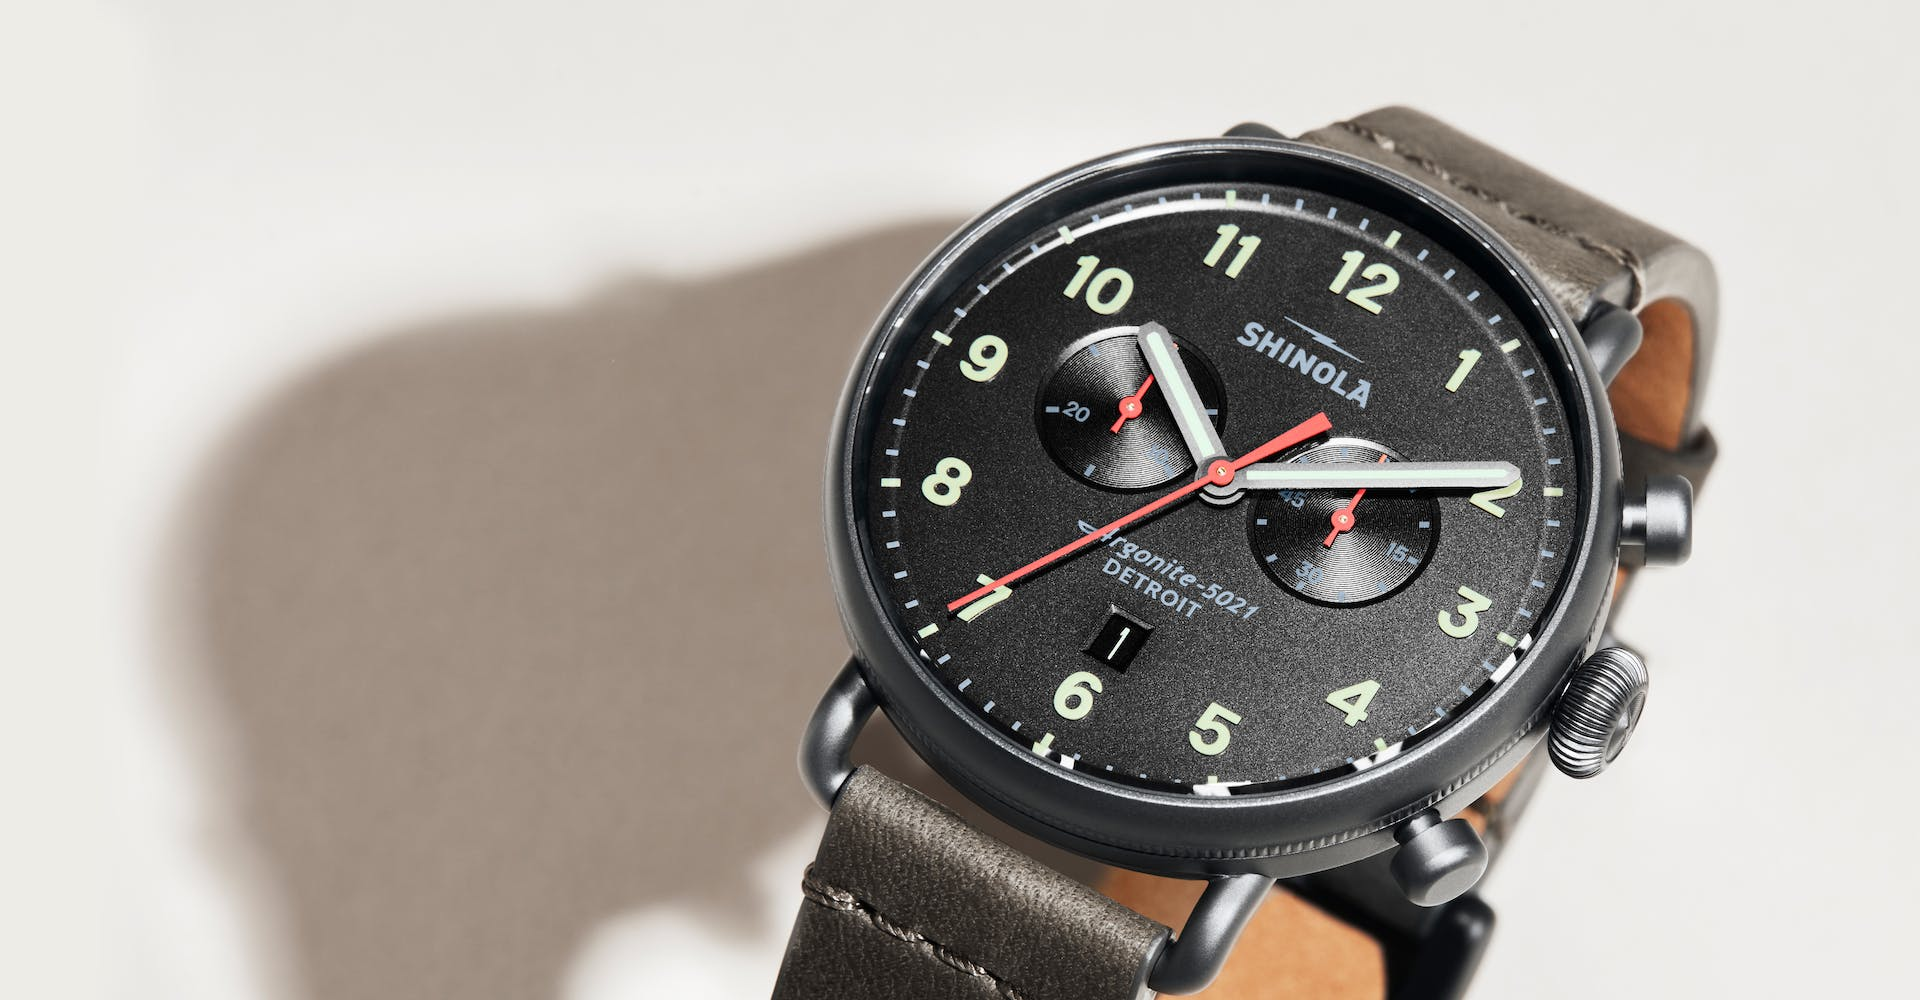 Shinola Mens Watches, Accessories and More